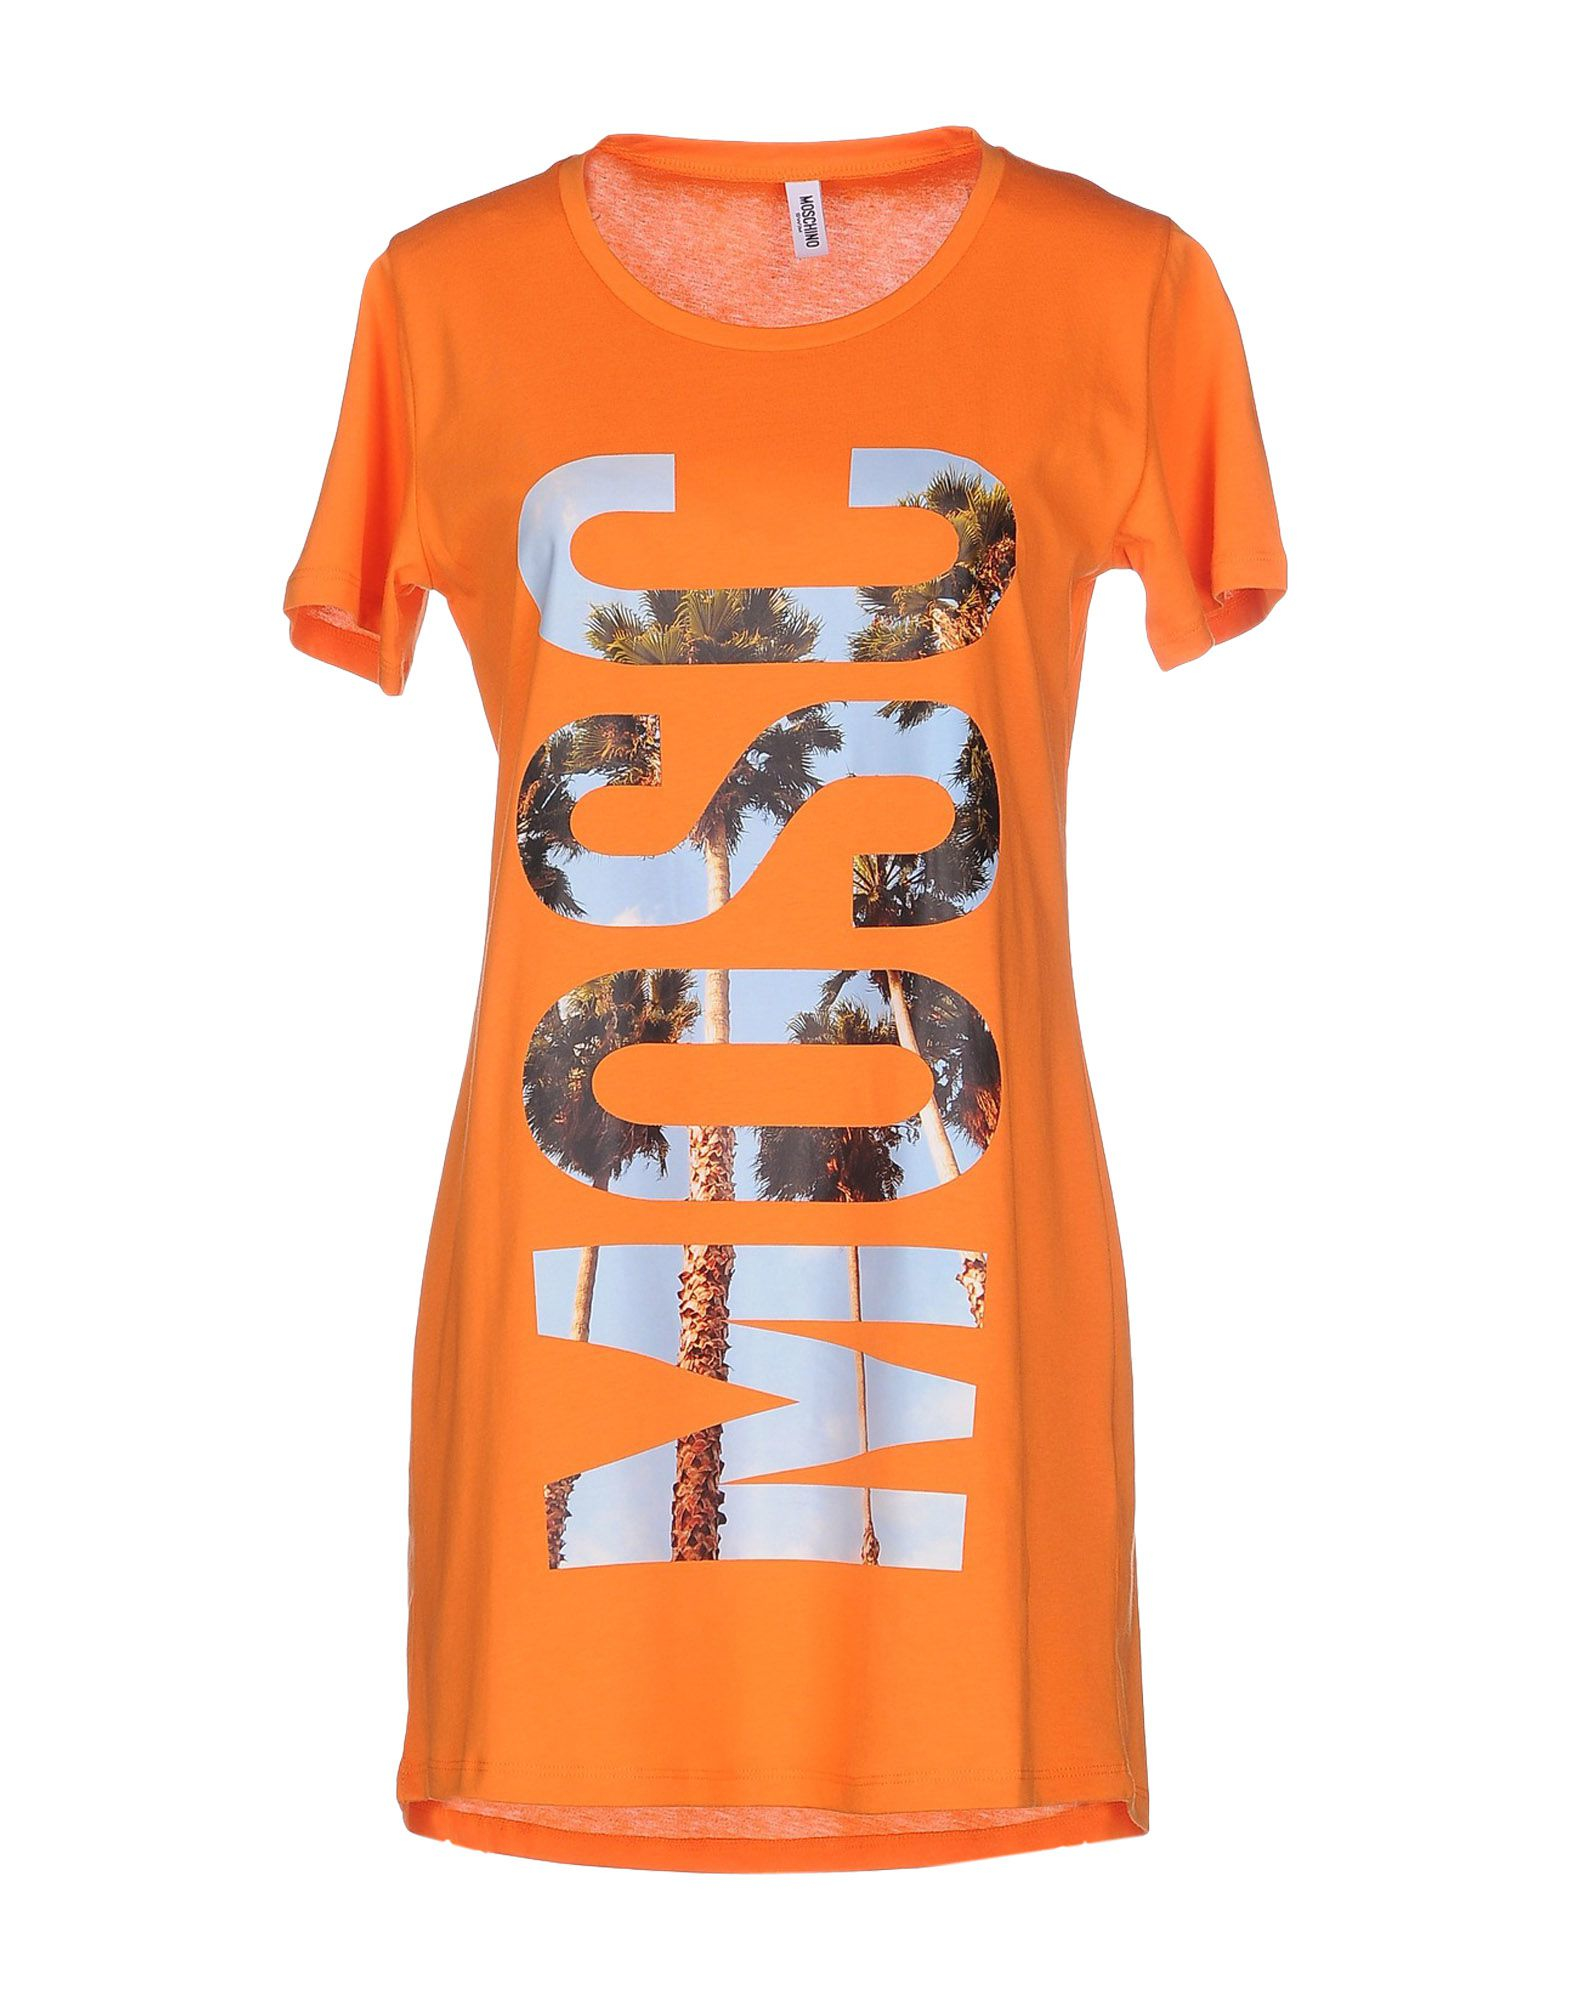 moschino t shirt in orange save 50 lyst. Black Bedroom Furniture Sets. Home Design Ideas